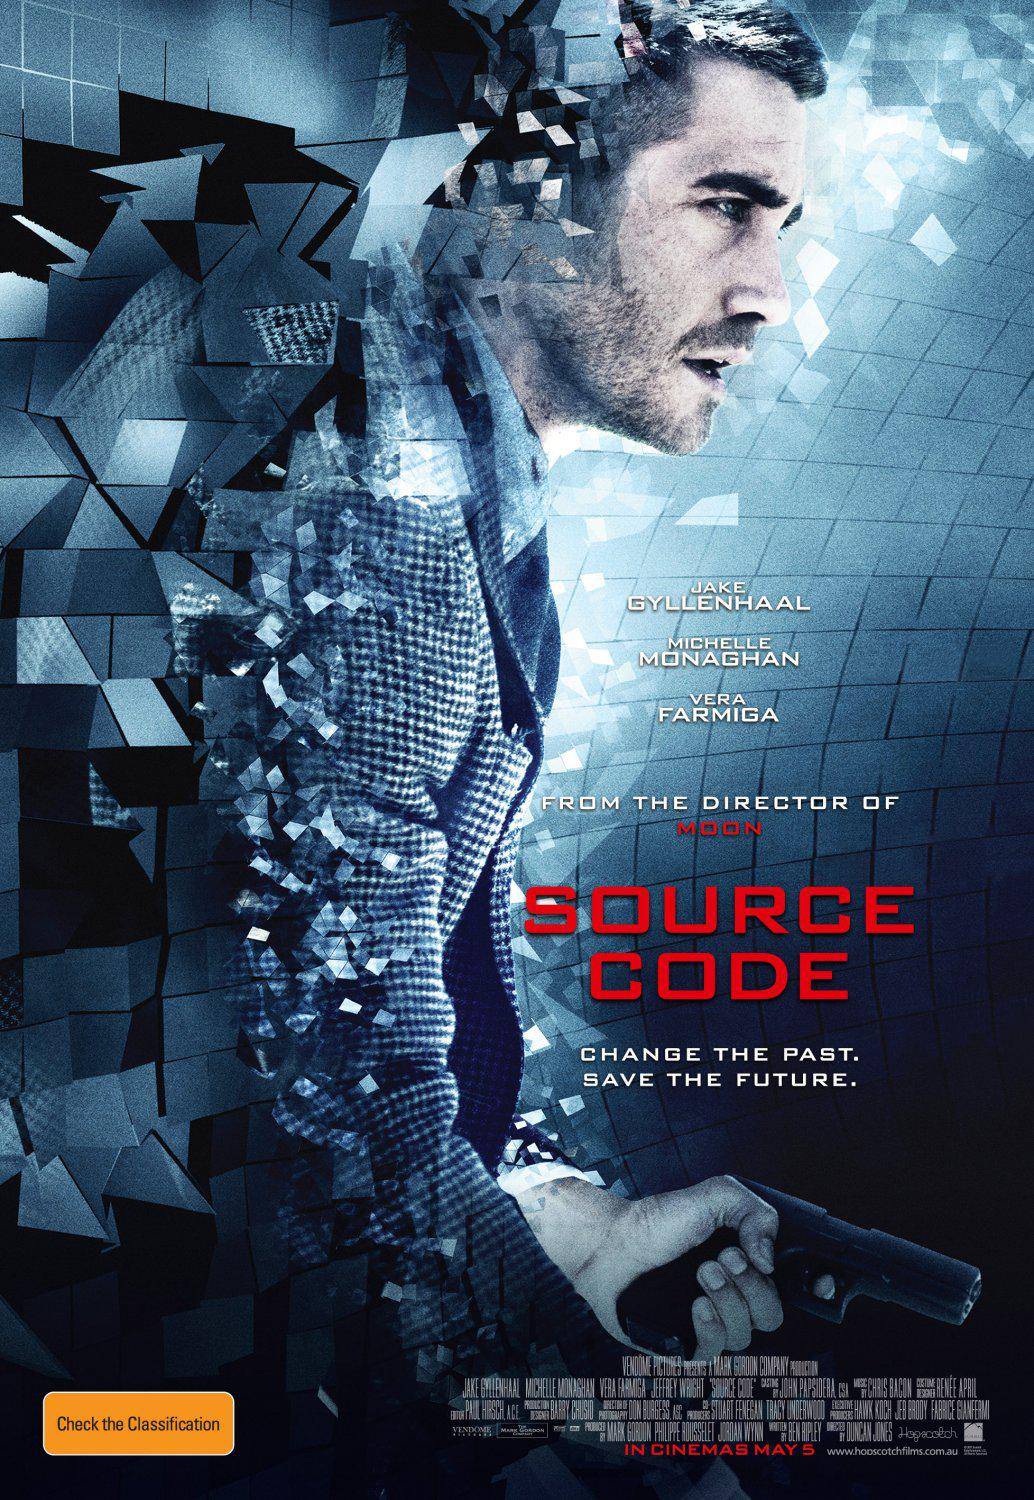 Source code - codice sorgente - Change the Past and Save the Future - Jake Gyllenhaal - Michelle Monaghan - Vera Farmiga